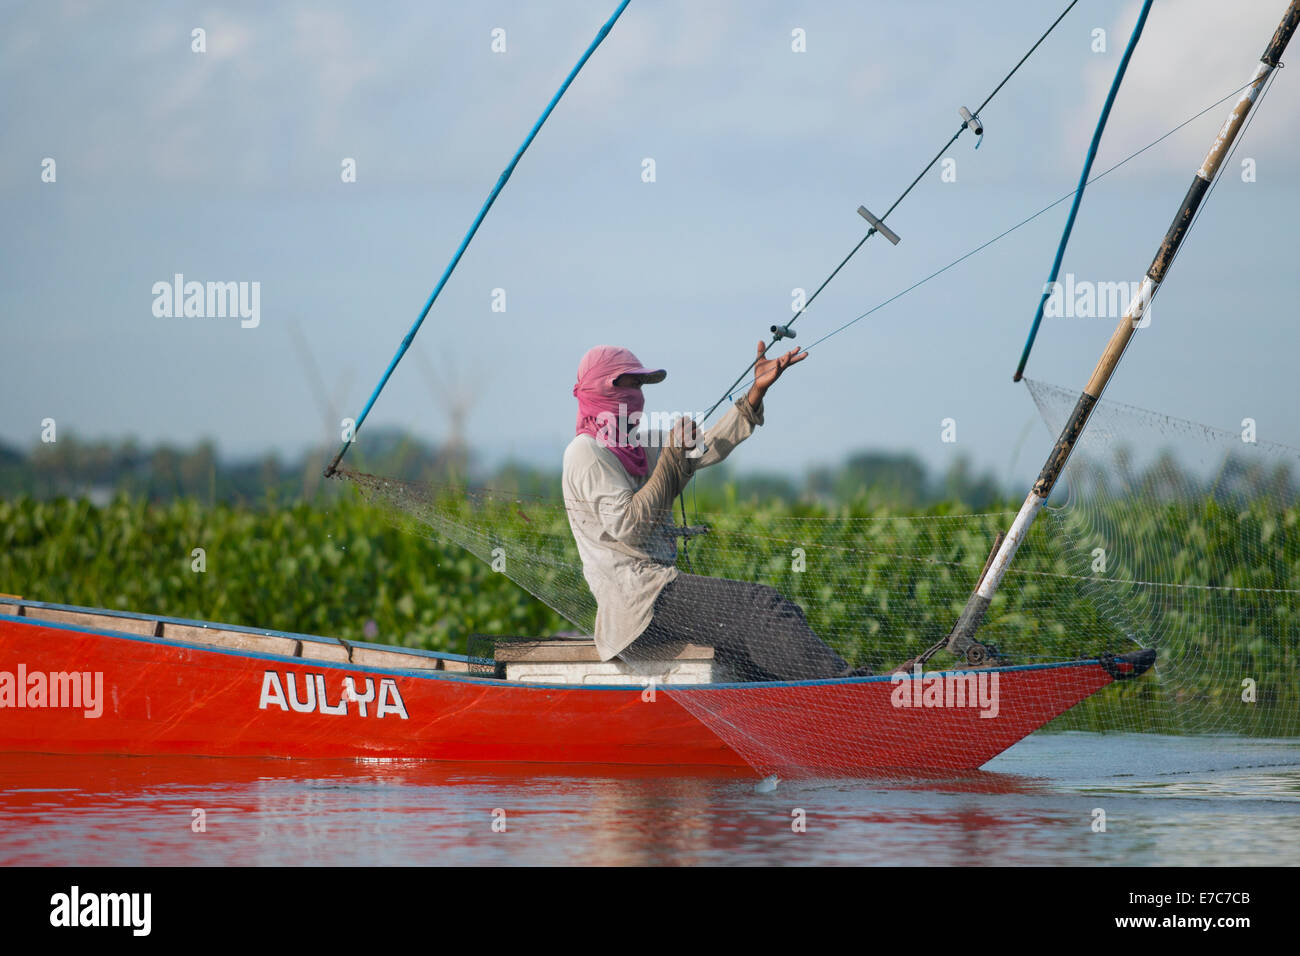 Fishing on the Tempe lake in Sulawesi, Indonesia - Stock Image